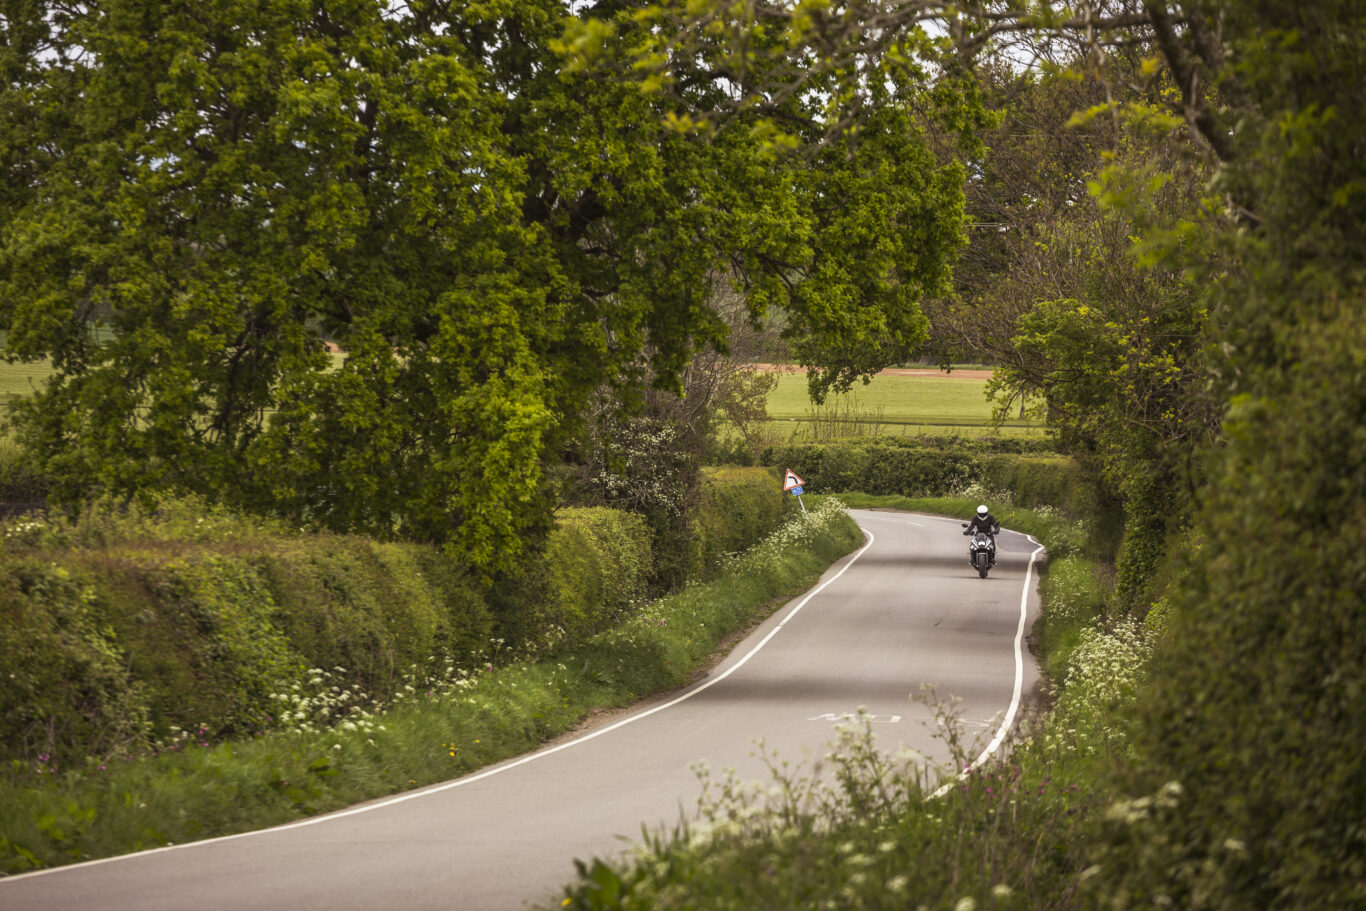 The Katana feels at home on the UK's country roads